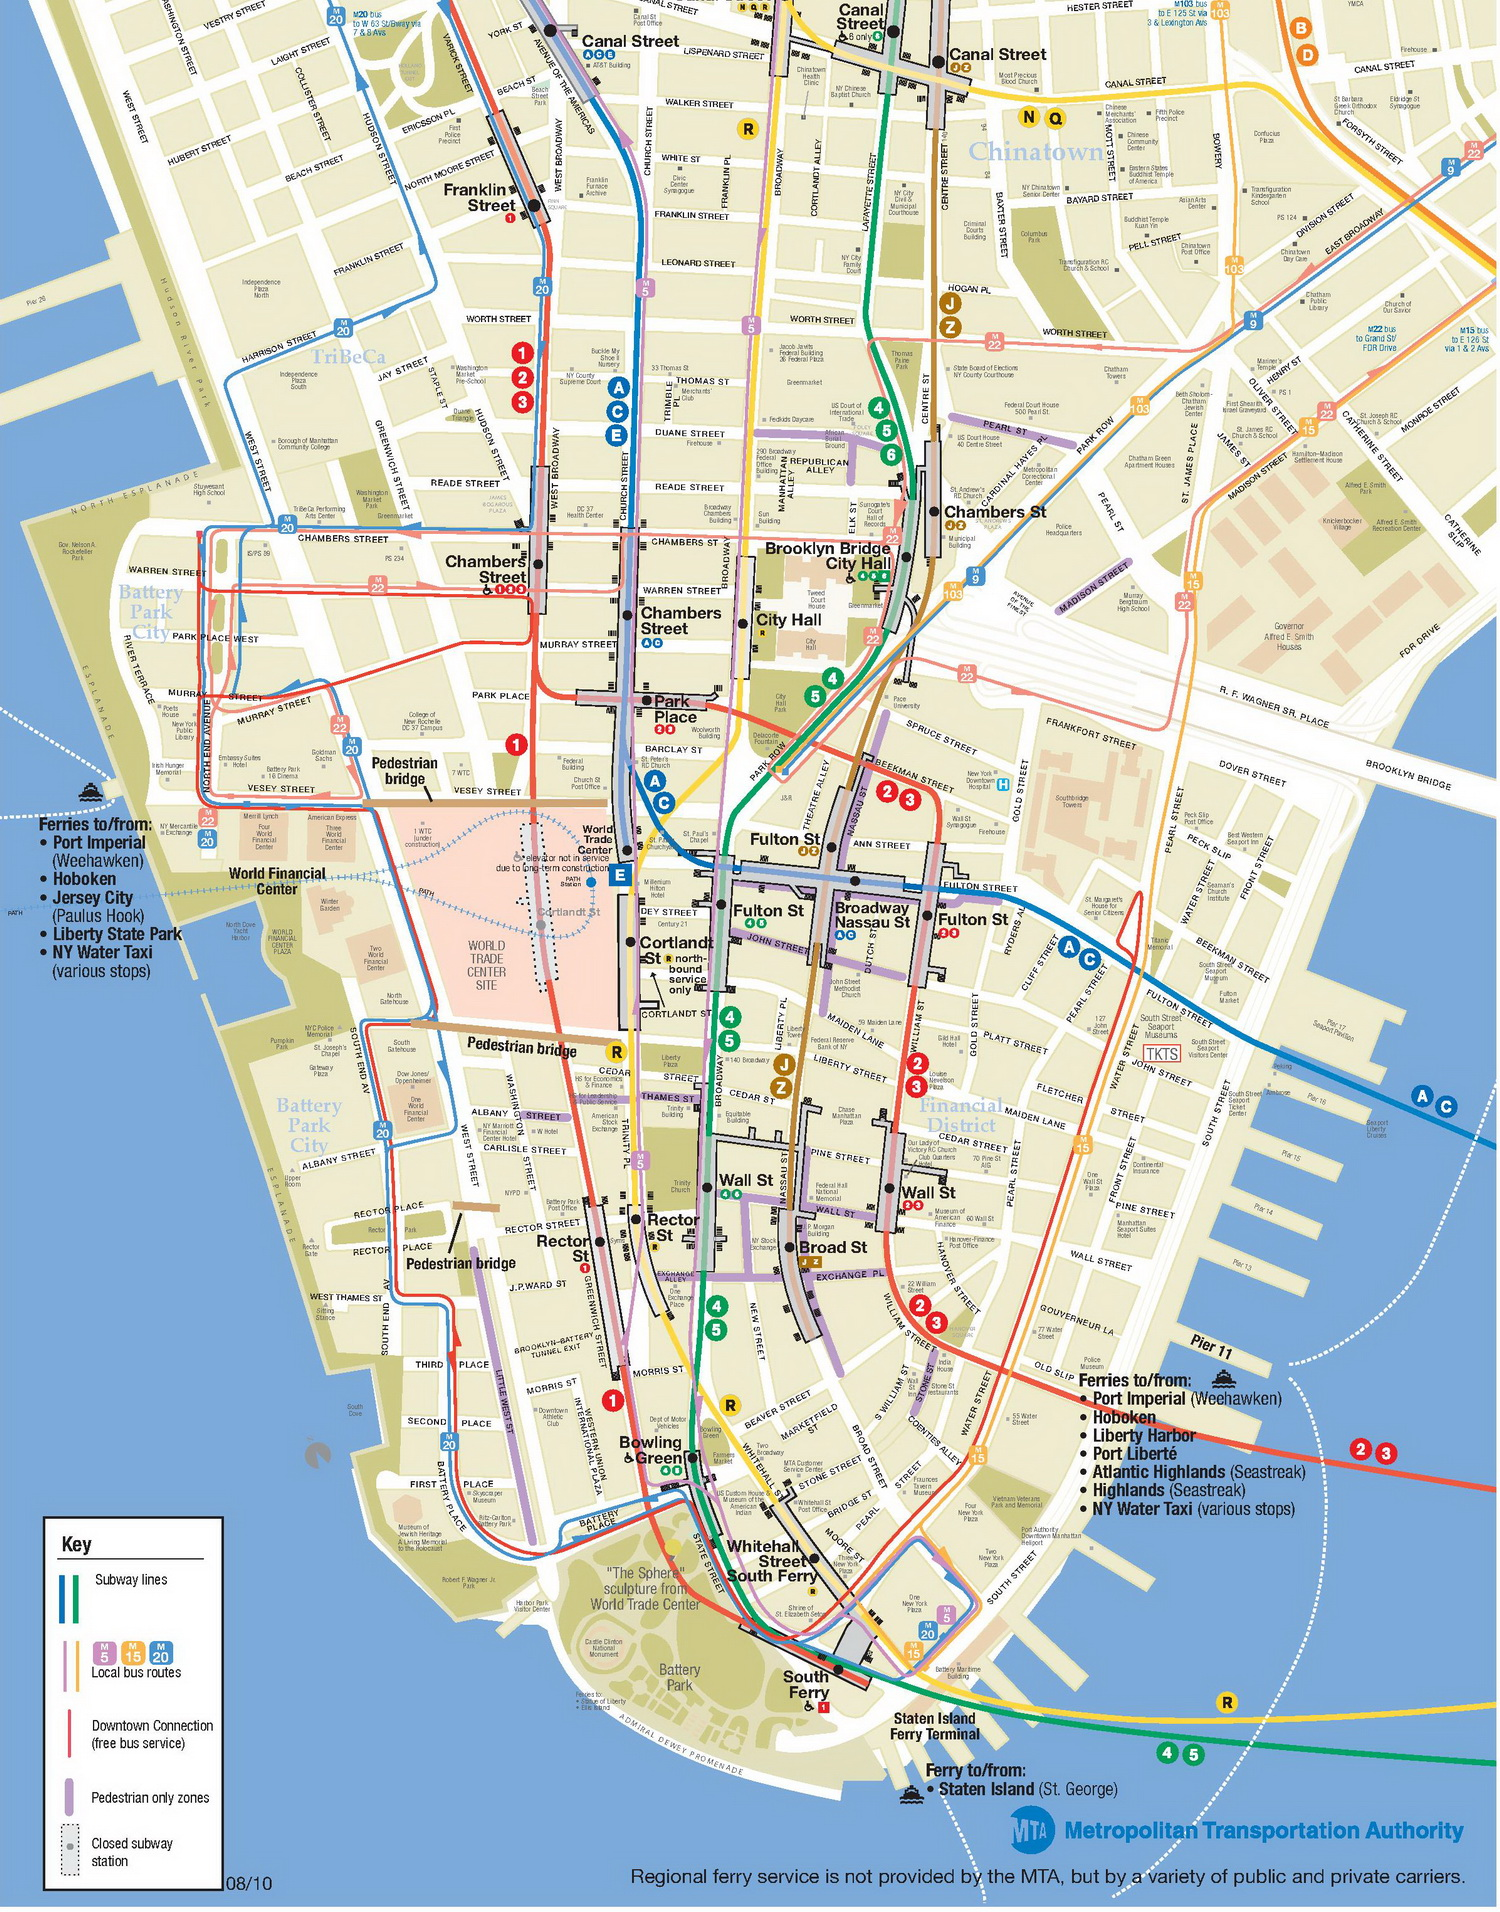 Lower Manhattan Map - Go! NYC Tourism Guide on home to go, safe to go, fan to go, kitchen to go, countries to go, events to go, education to go, air conditioning to go, sauna to go, radio to go, history to go, parks to go, desk to go, restaurants to go, garden to go, travel to go, garage to go, library to go,